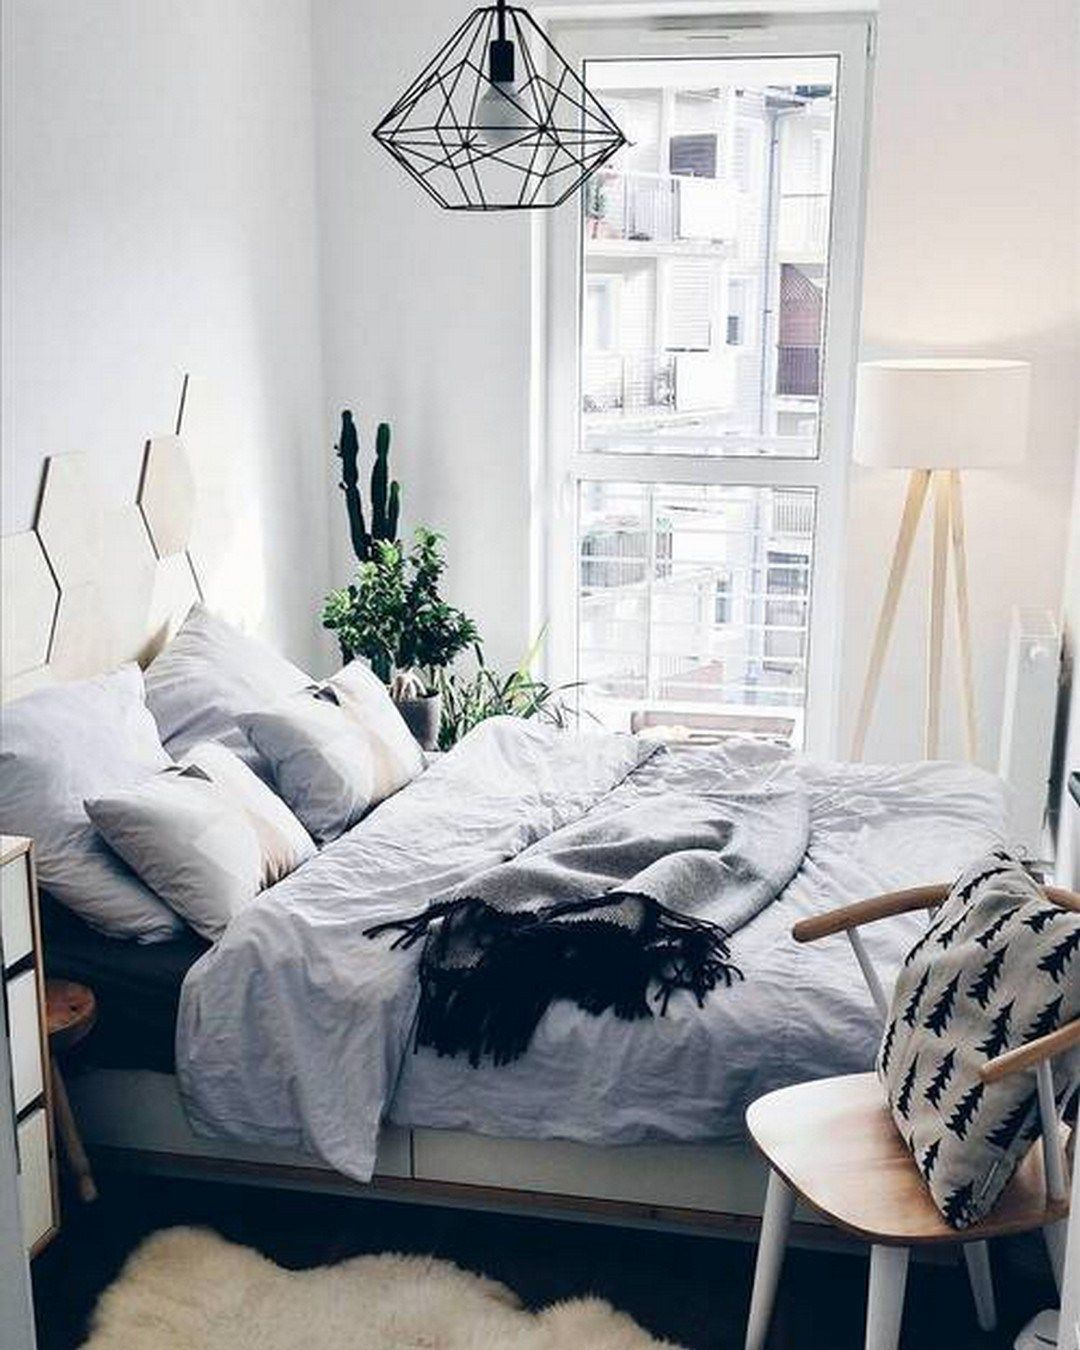 99 Elegant Cozy Bedroom Ideas With Small Spaces (39